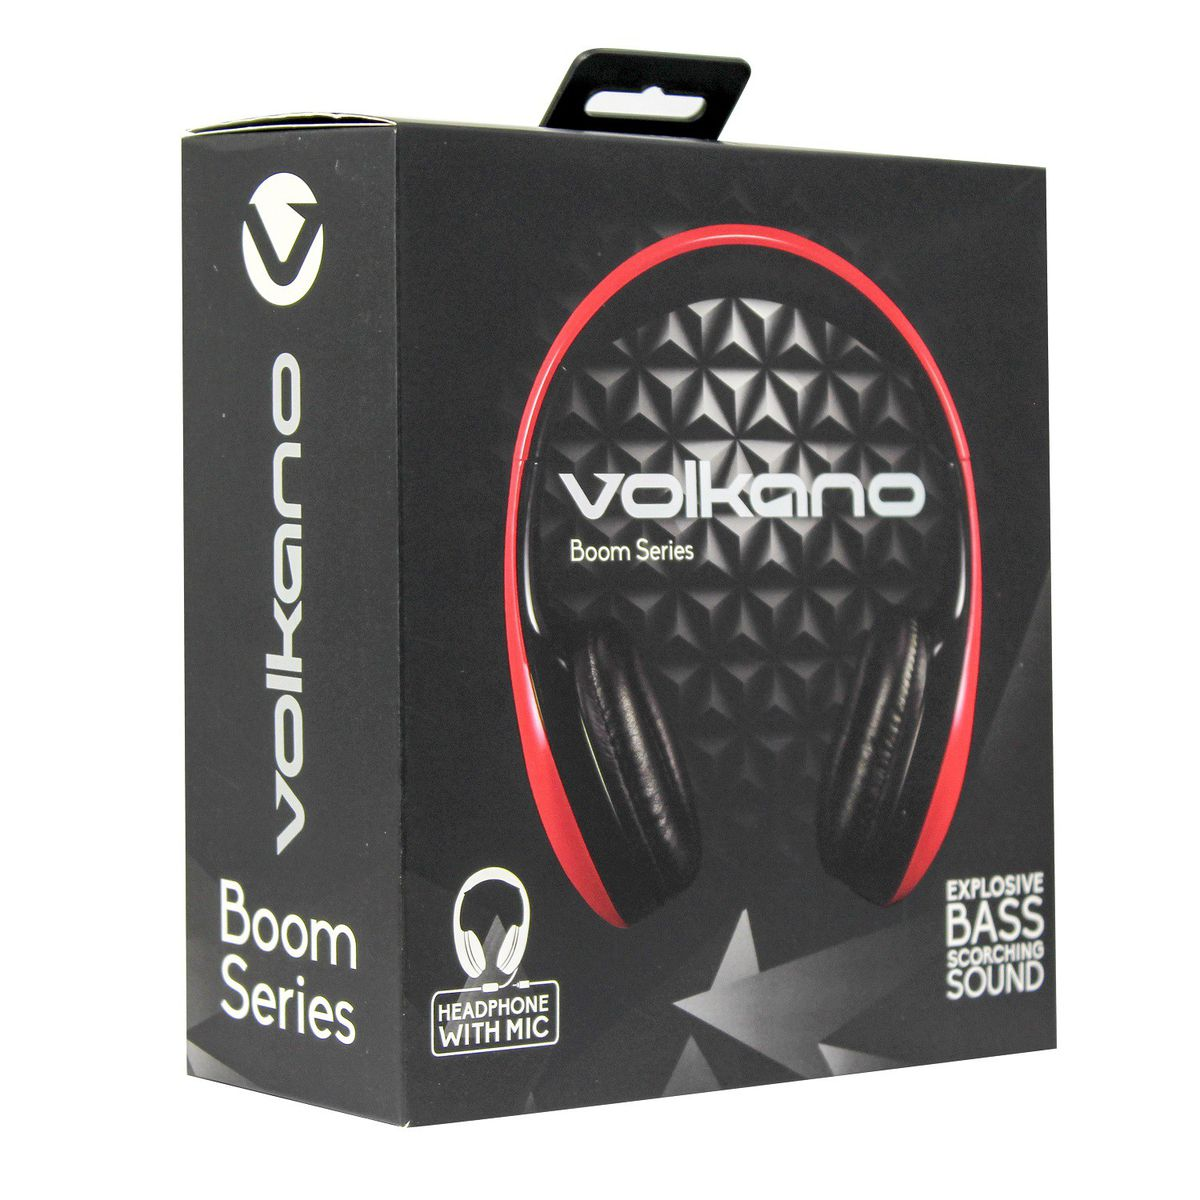 Volkano Headphones Headsets Products Available To Buy Online Headset Bluetooth Jbl X Under Armour Earphone Headphone Wireless Handsfree Boom Series Red